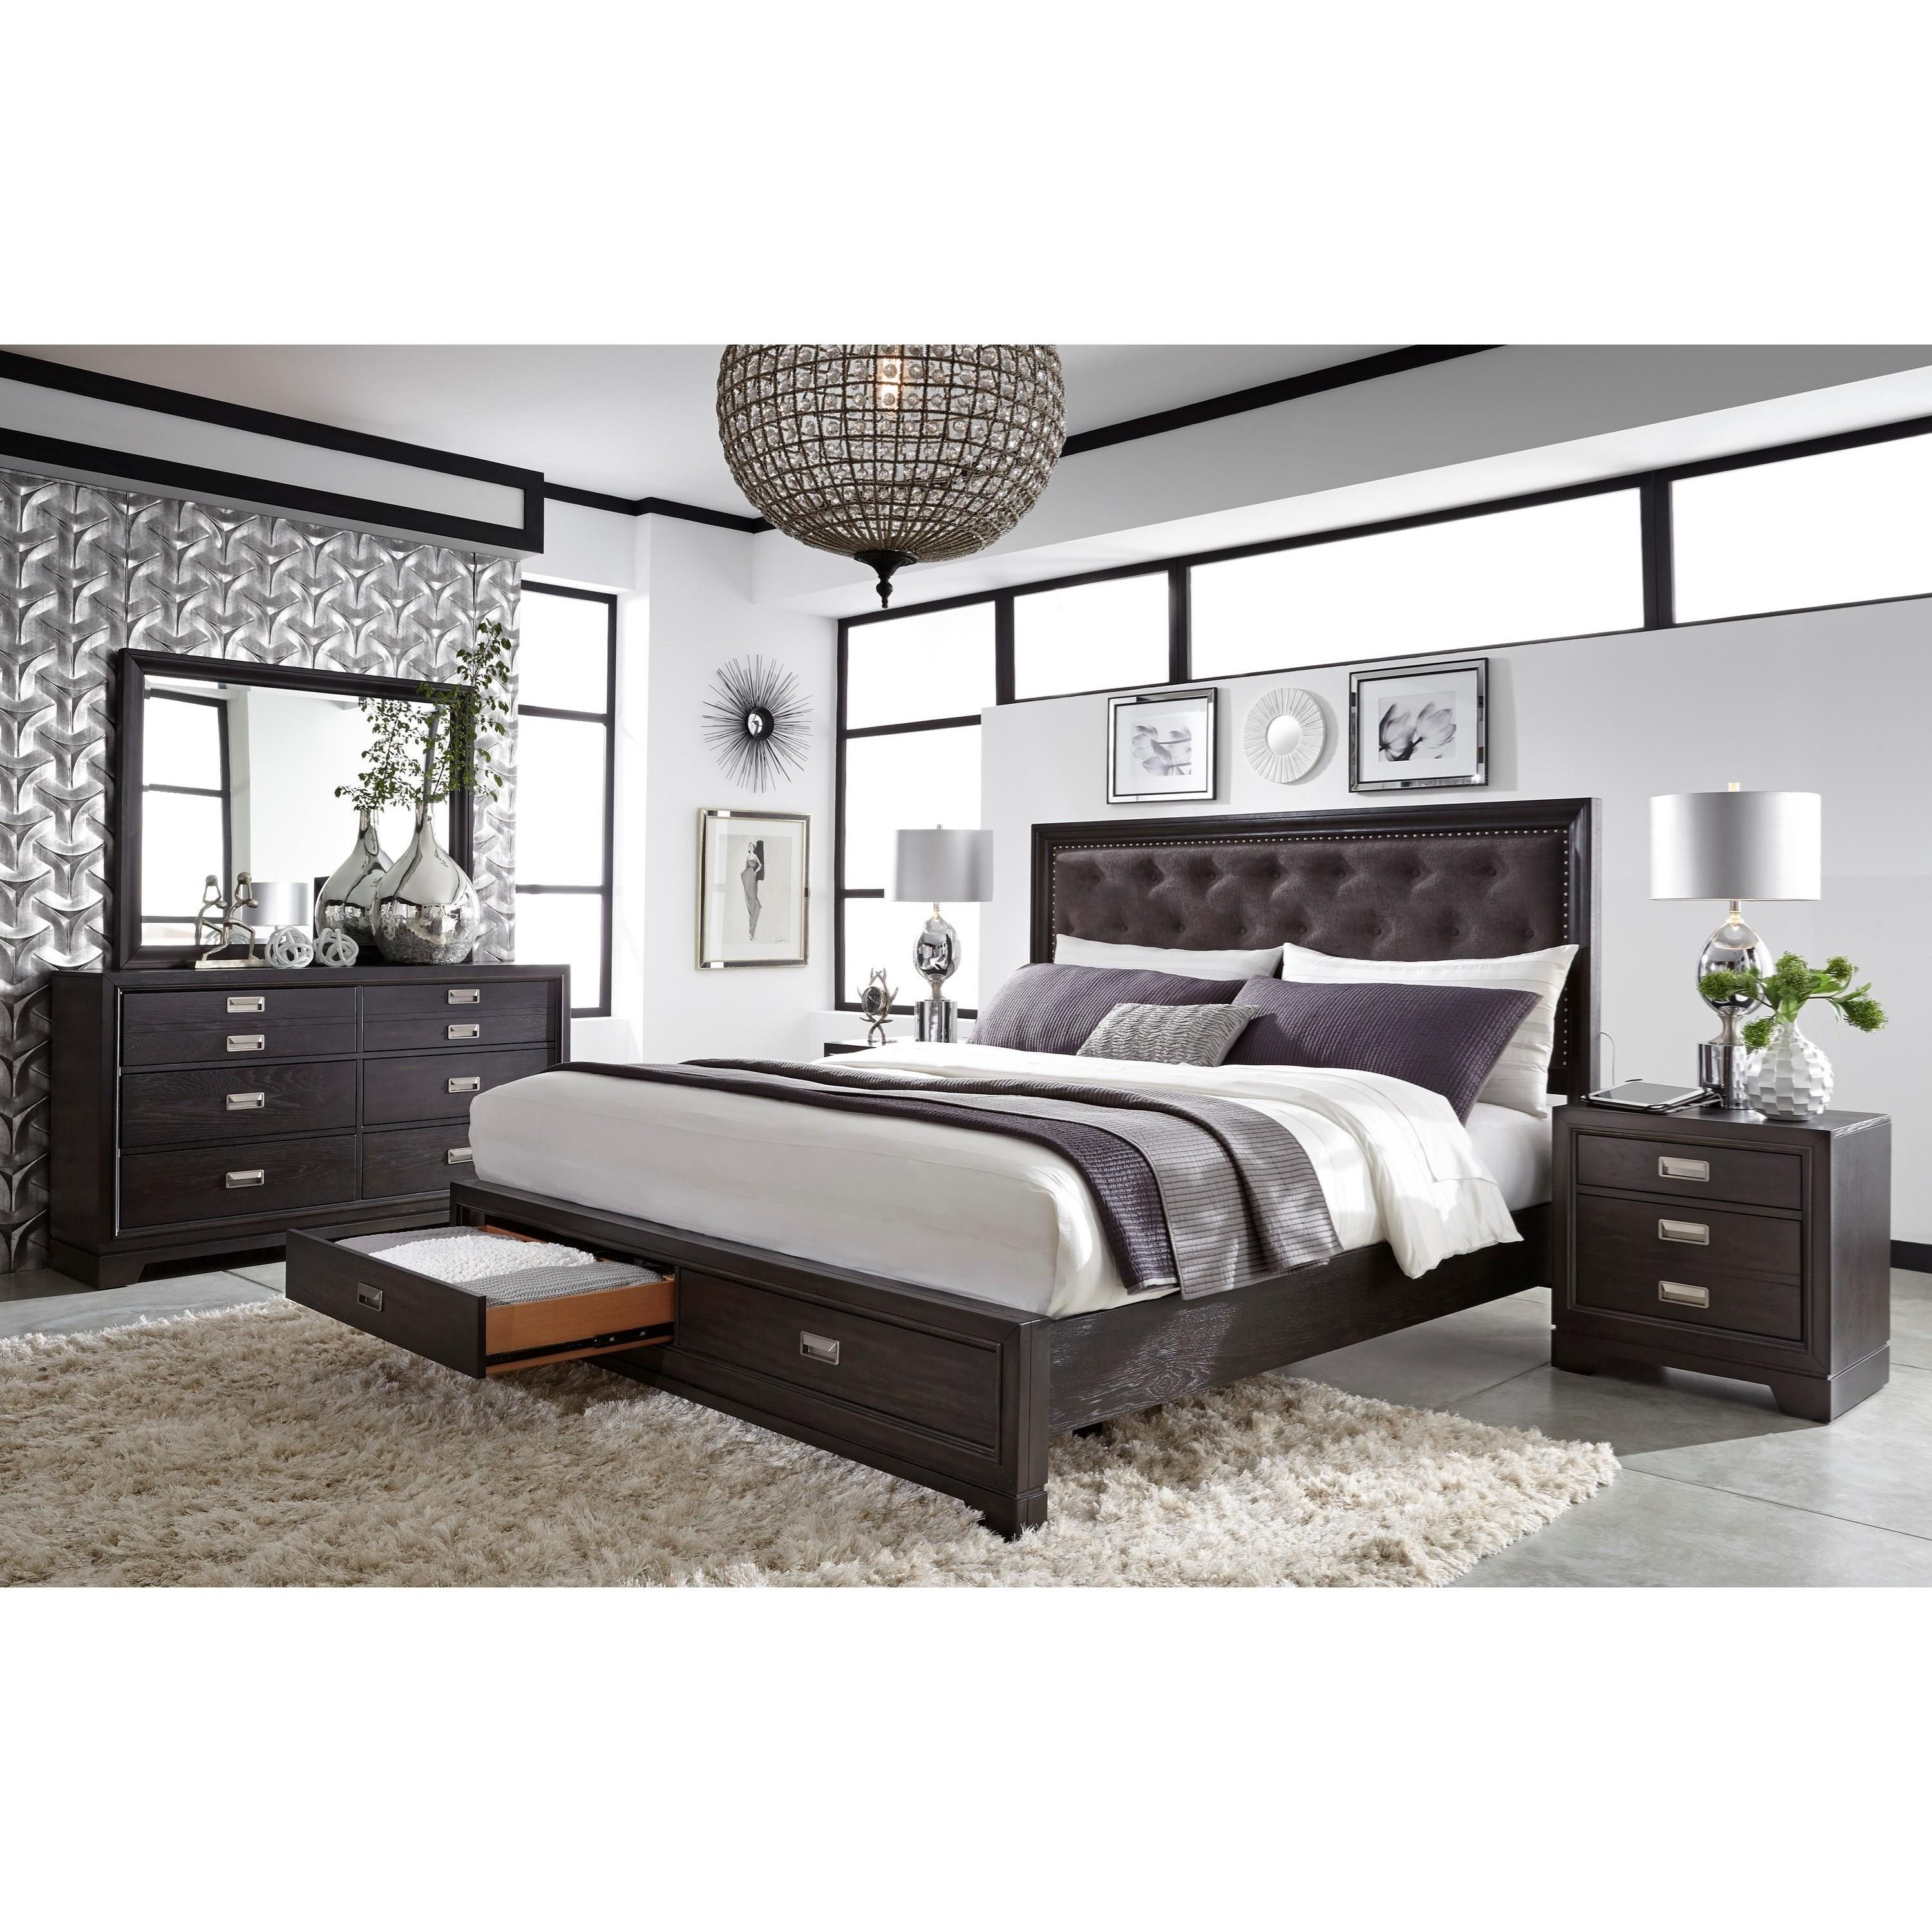 Aspenhome Front Street Ifs 450 Blc 2 Drawer Nightstand With Ac Outlets Hudson 39 S Furniture